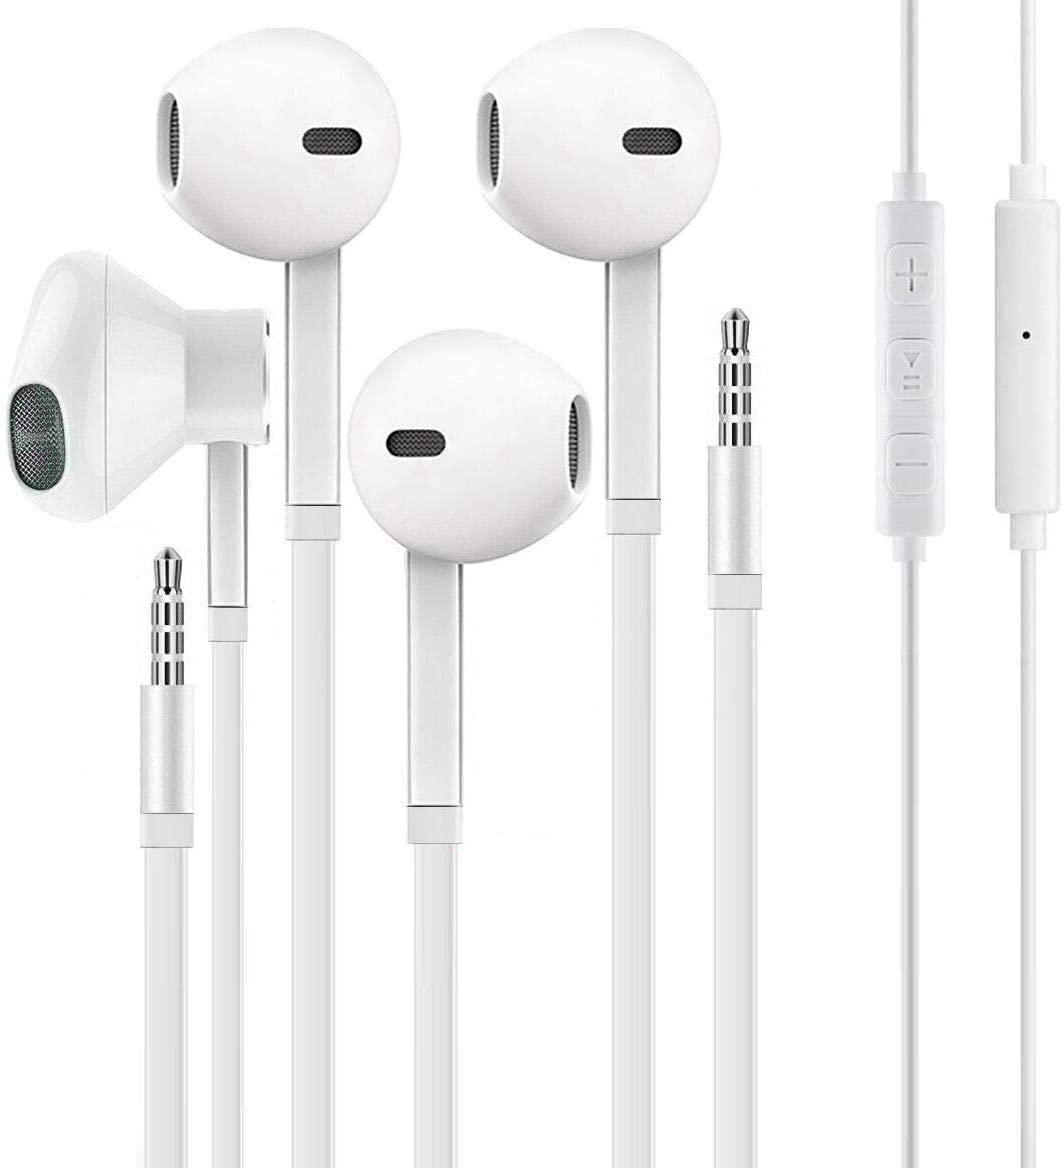 Aux Headphones/Earphones/Earbuds 3.5mm Wired Headphones Noise Isolating Earphones with Built-in Microphone & Volume Control Compatible with Phone 6 SE 5S 4 Pod Pad Samsung/Android MP3